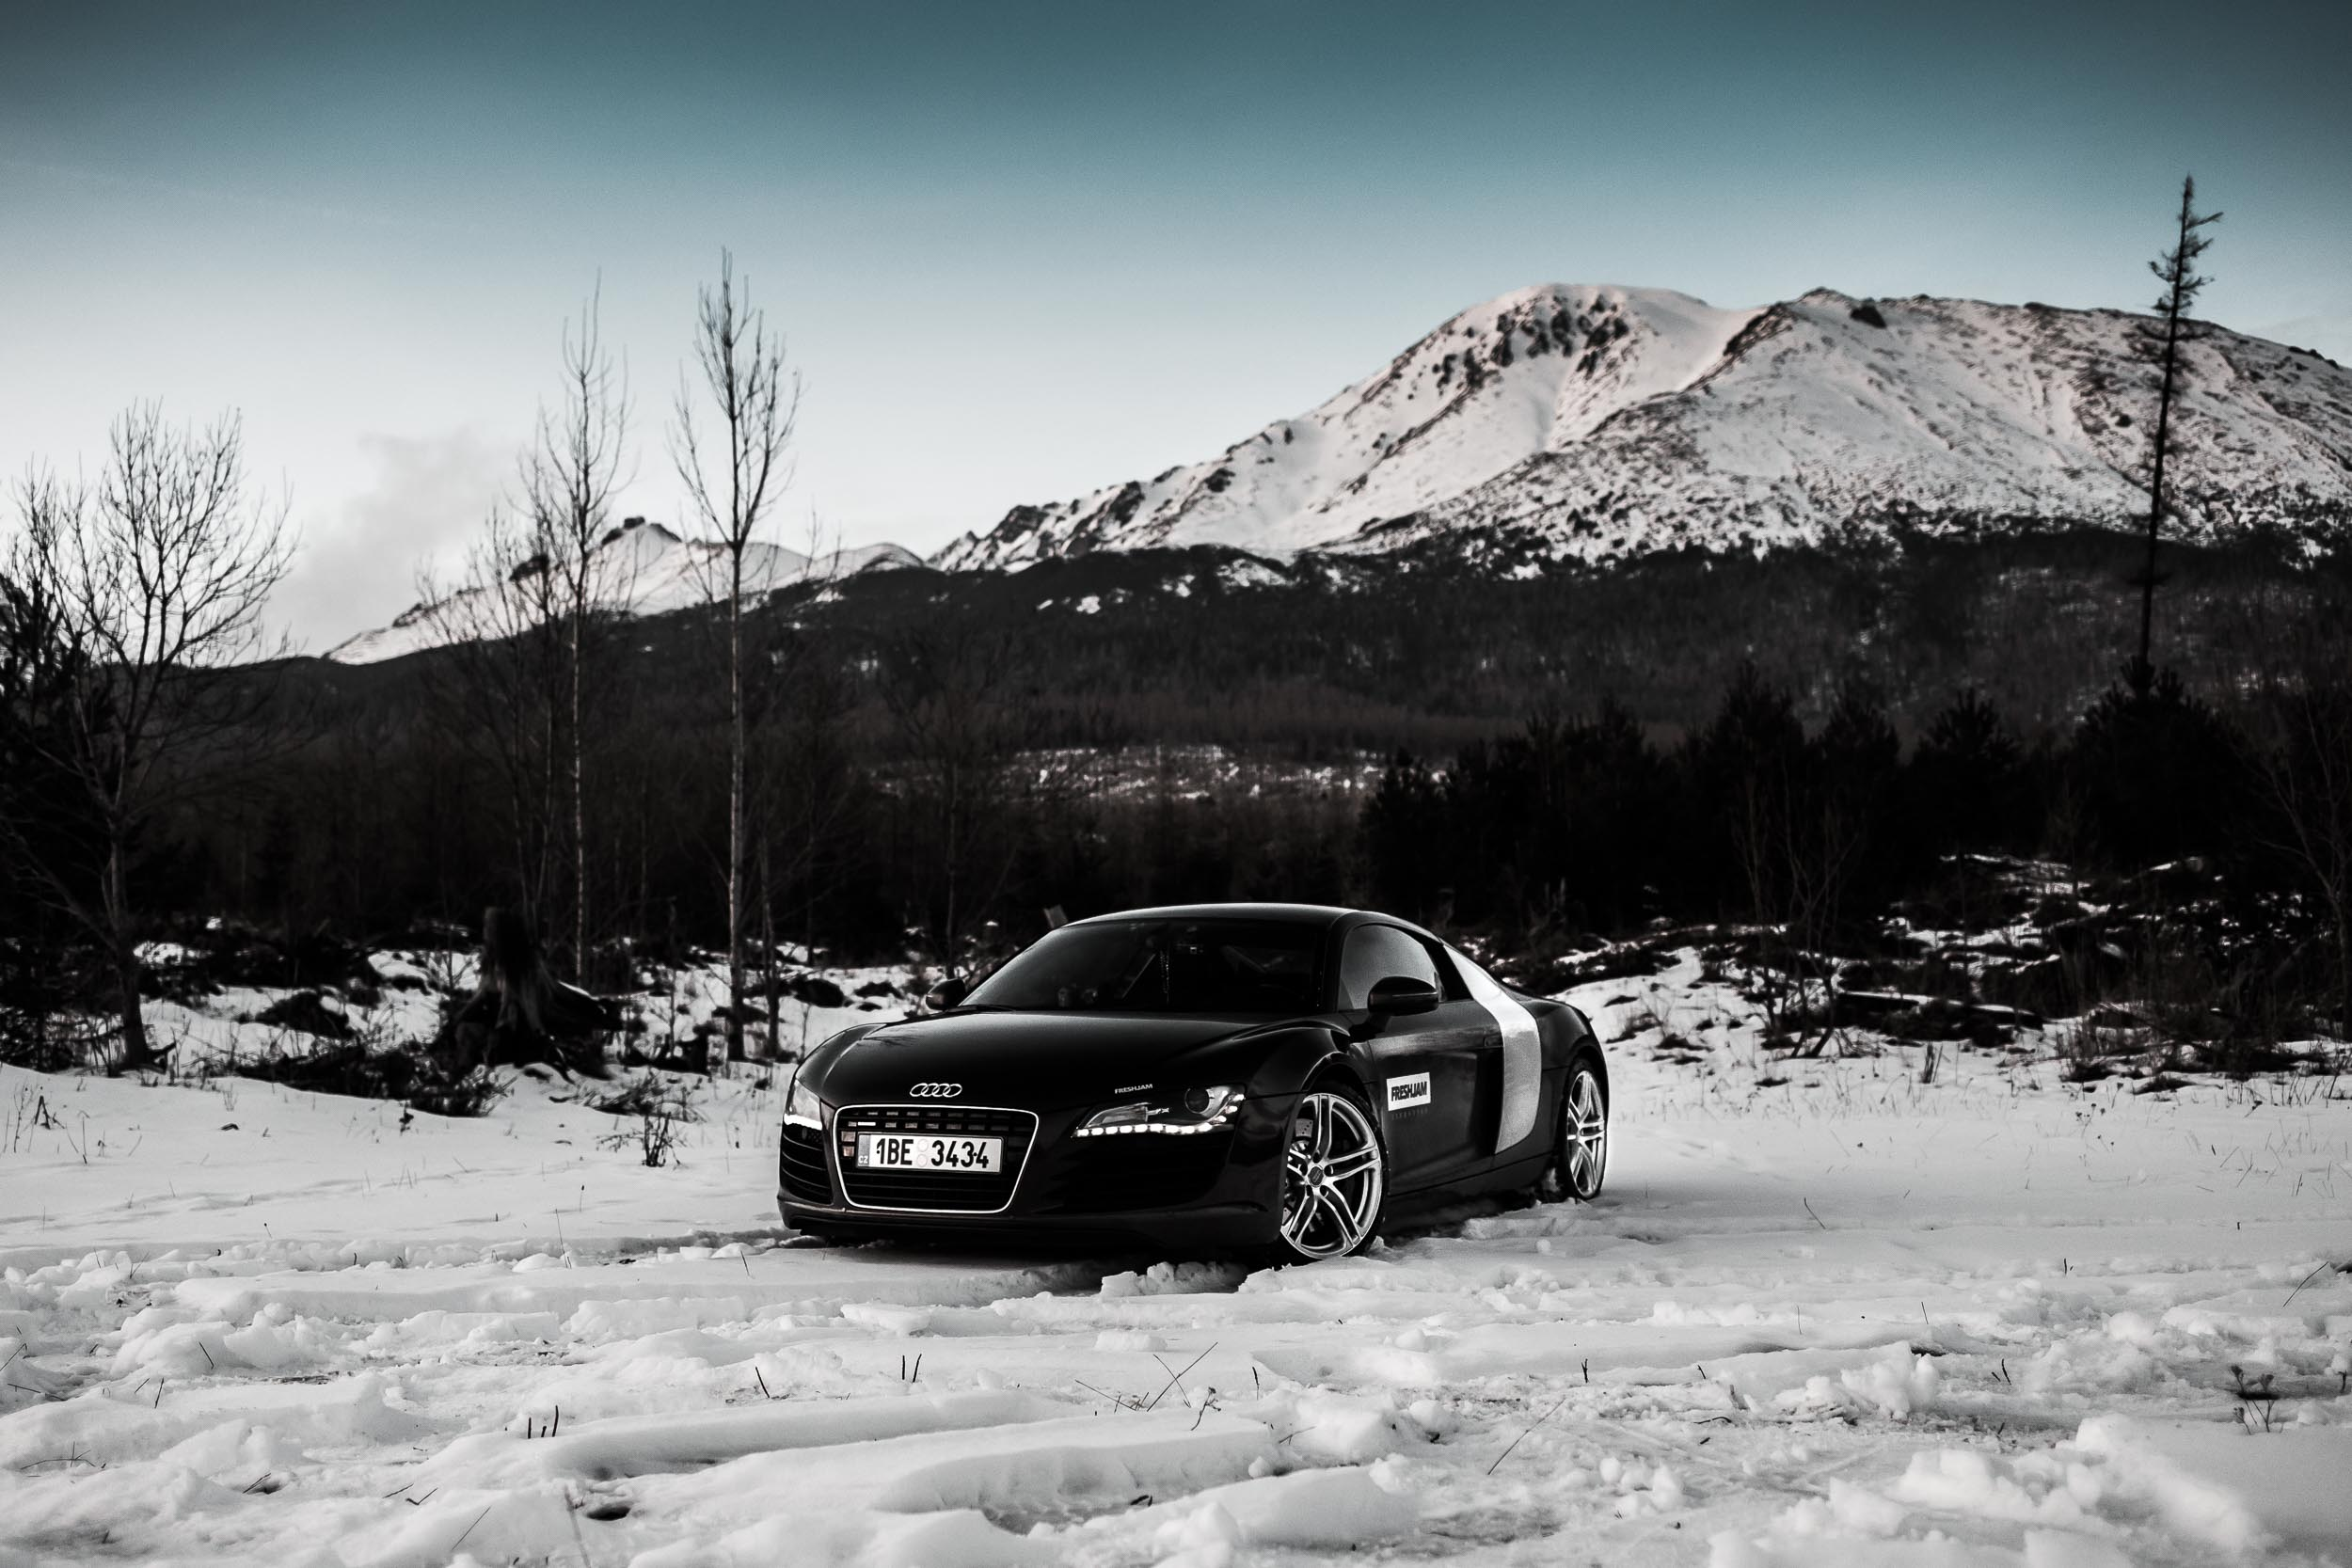 R8 High Tatras Snow for Smartphones